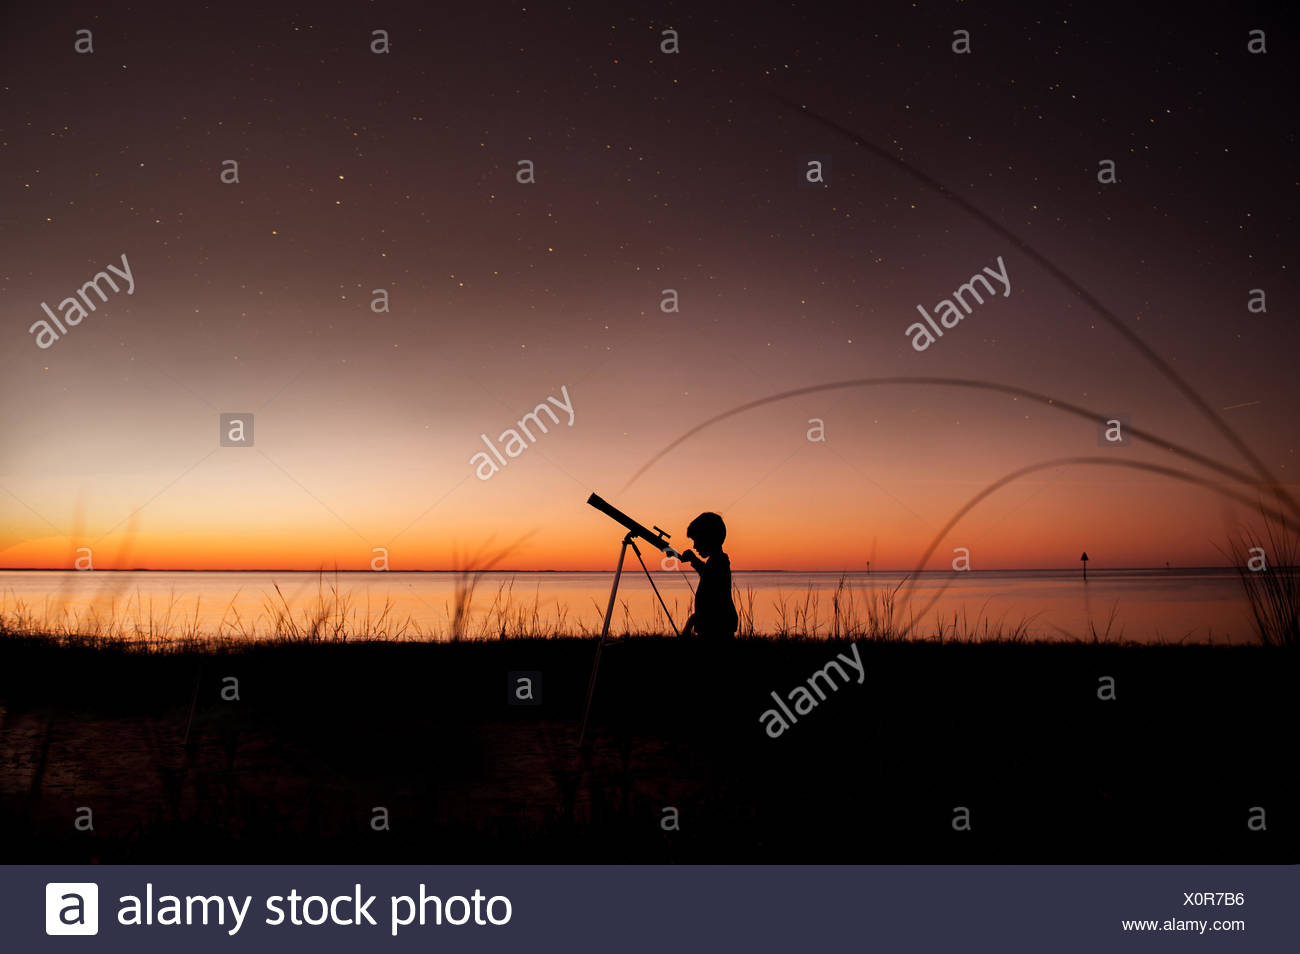 Silhouette of boy looking at stars through telescope - Stock Image